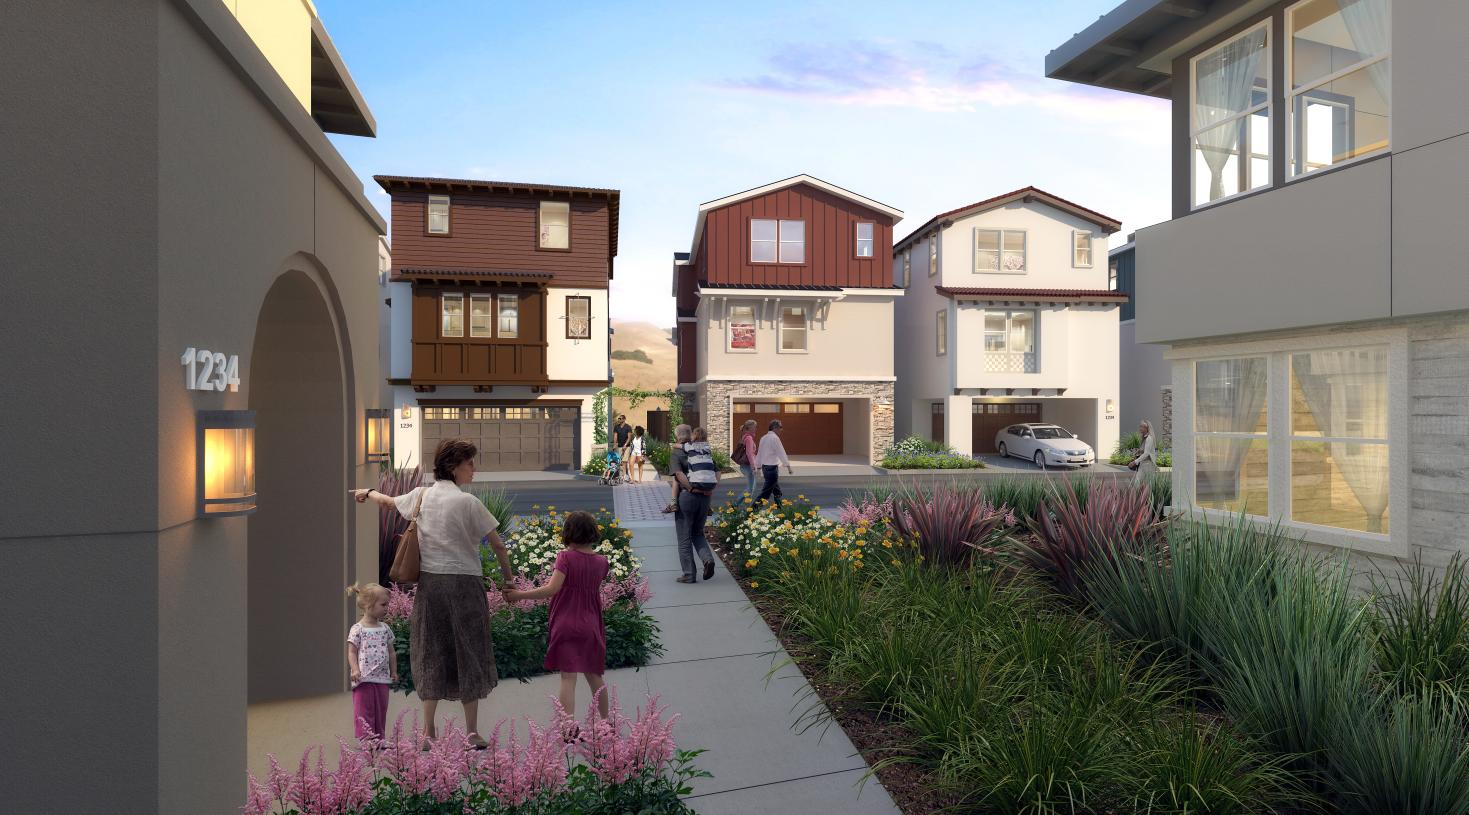 Within minutes to City Center at Bishop Ranch